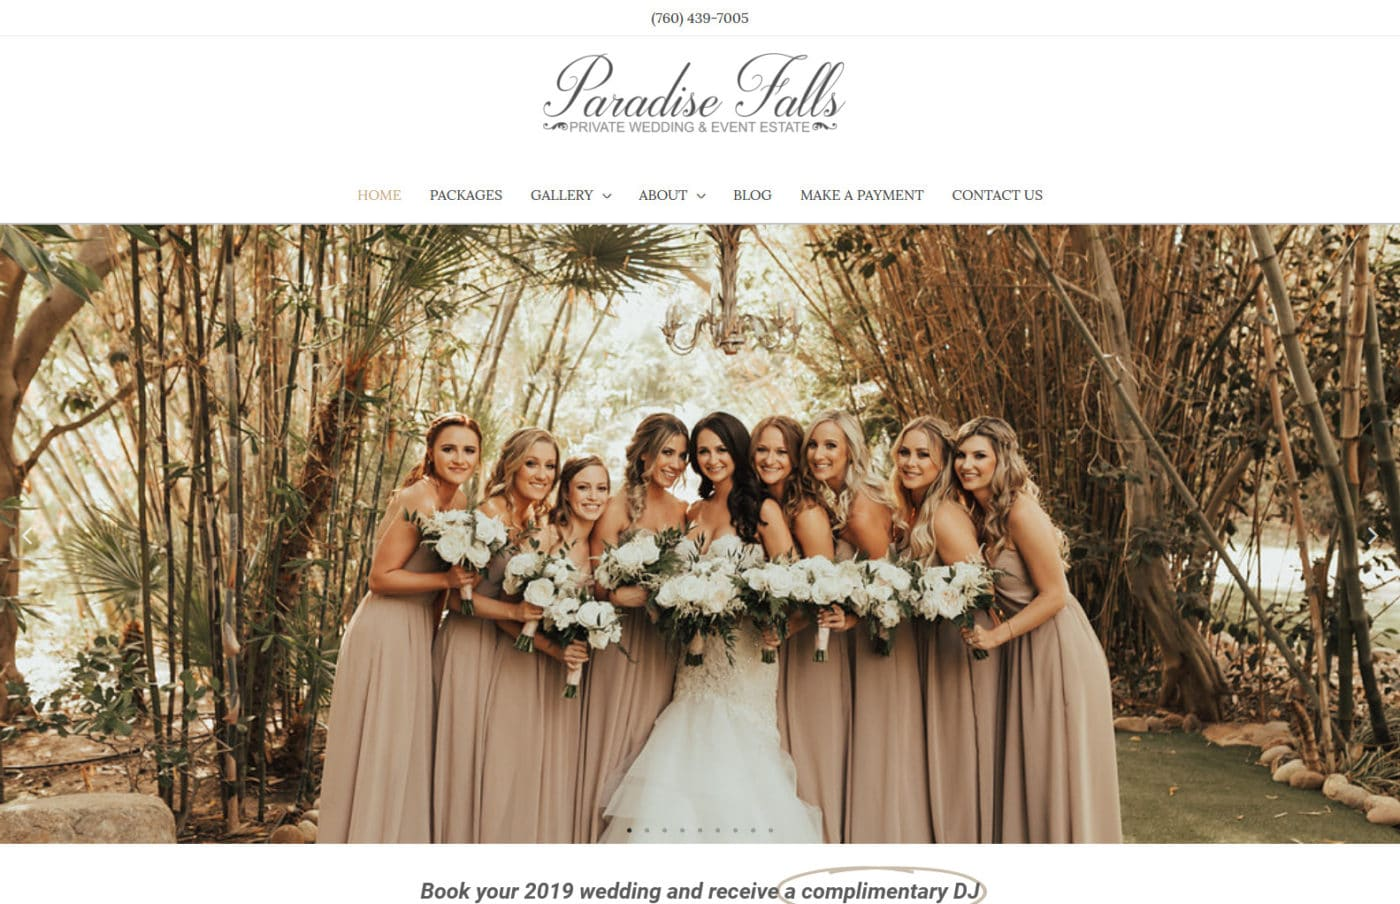 Paradise Falls Weddings in Oceanside CA